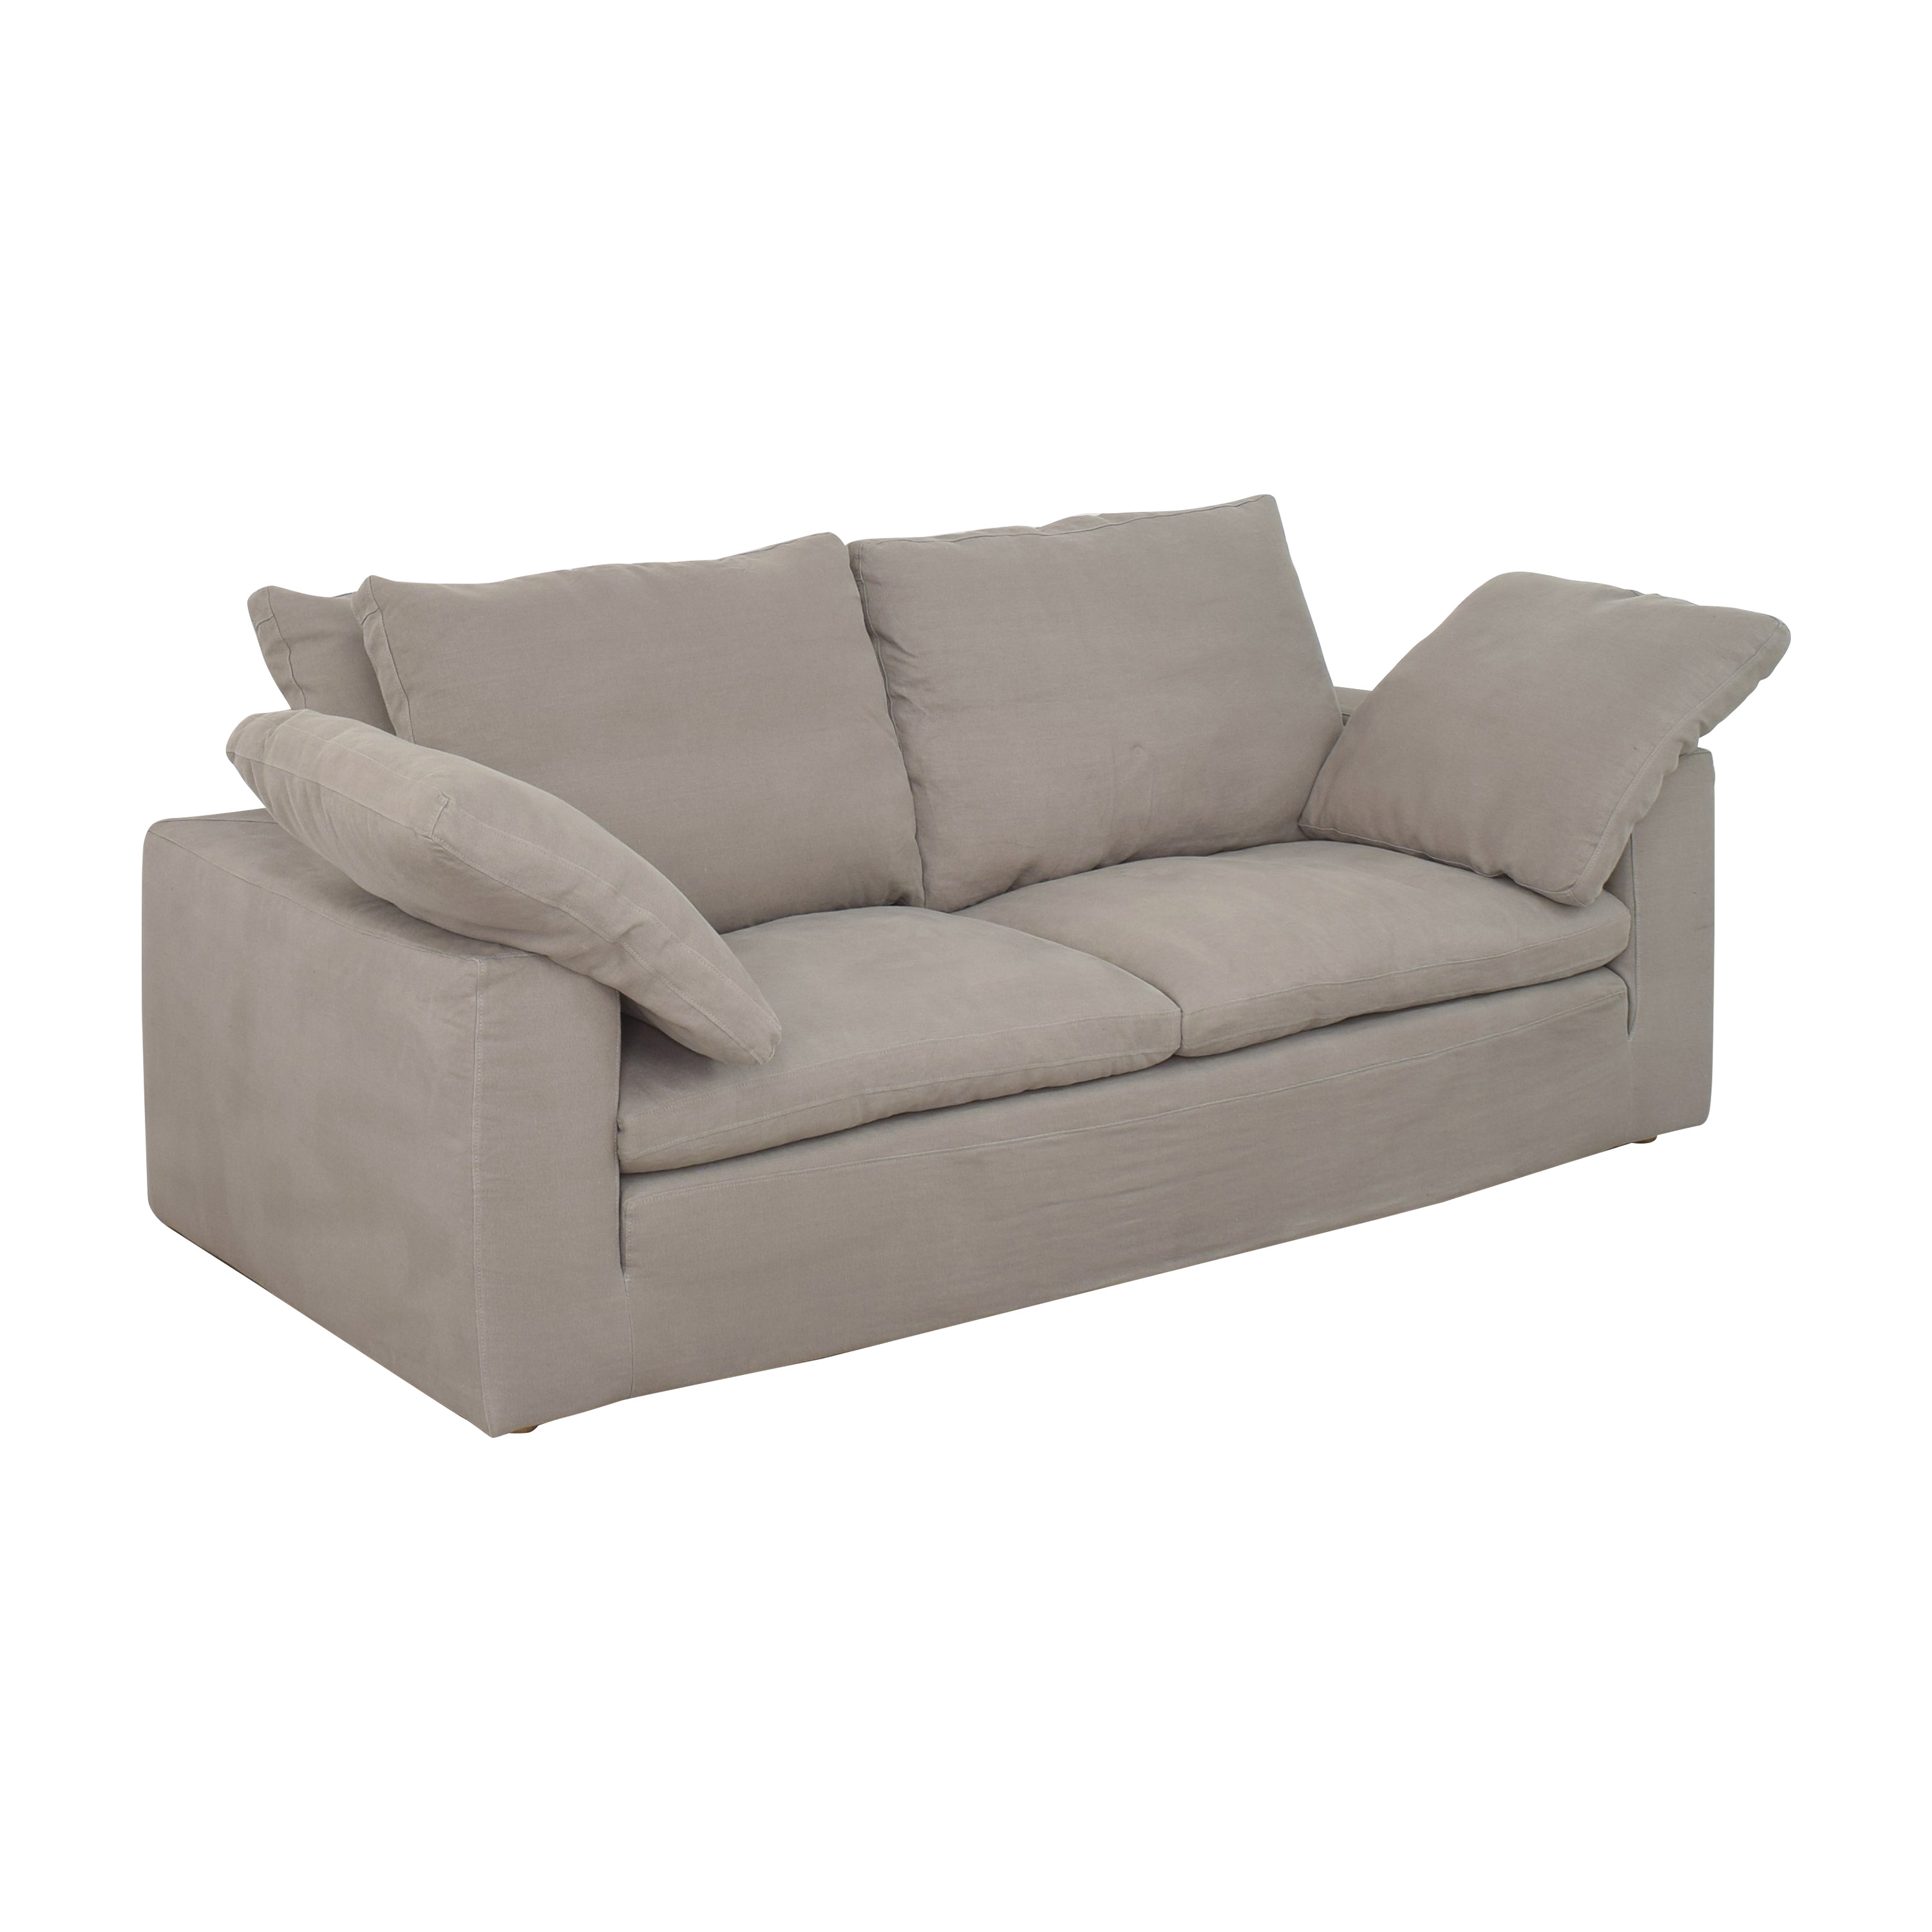 Restoration Hardware Restoration Hardware Cloud Two-Seat-Cushion Sofa for sale